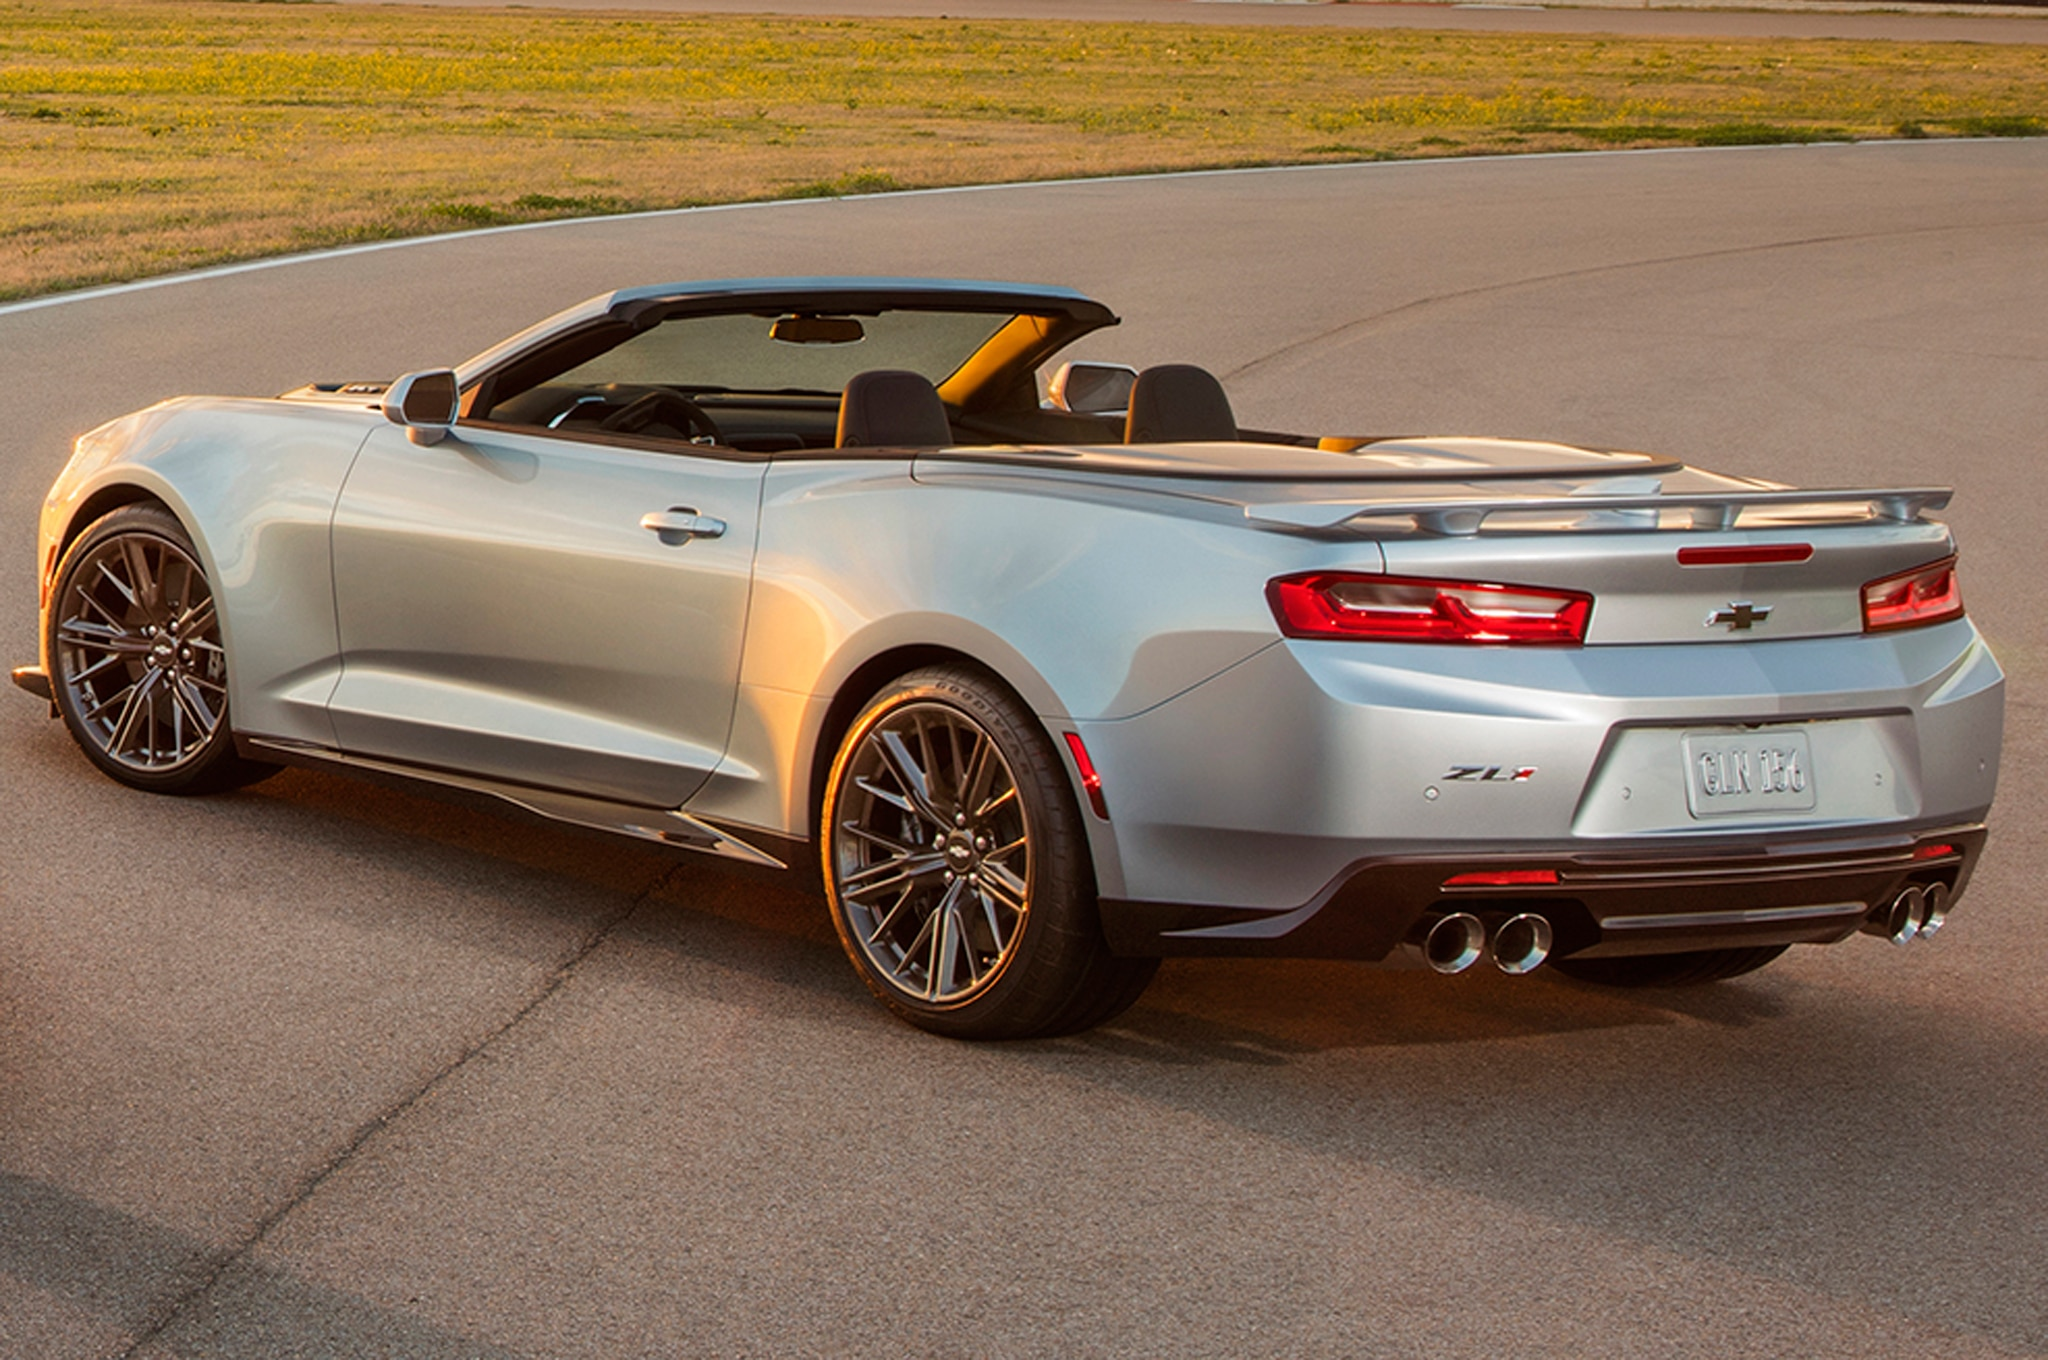 Zl1 Camaro Convertible For Sale Html Autos Post